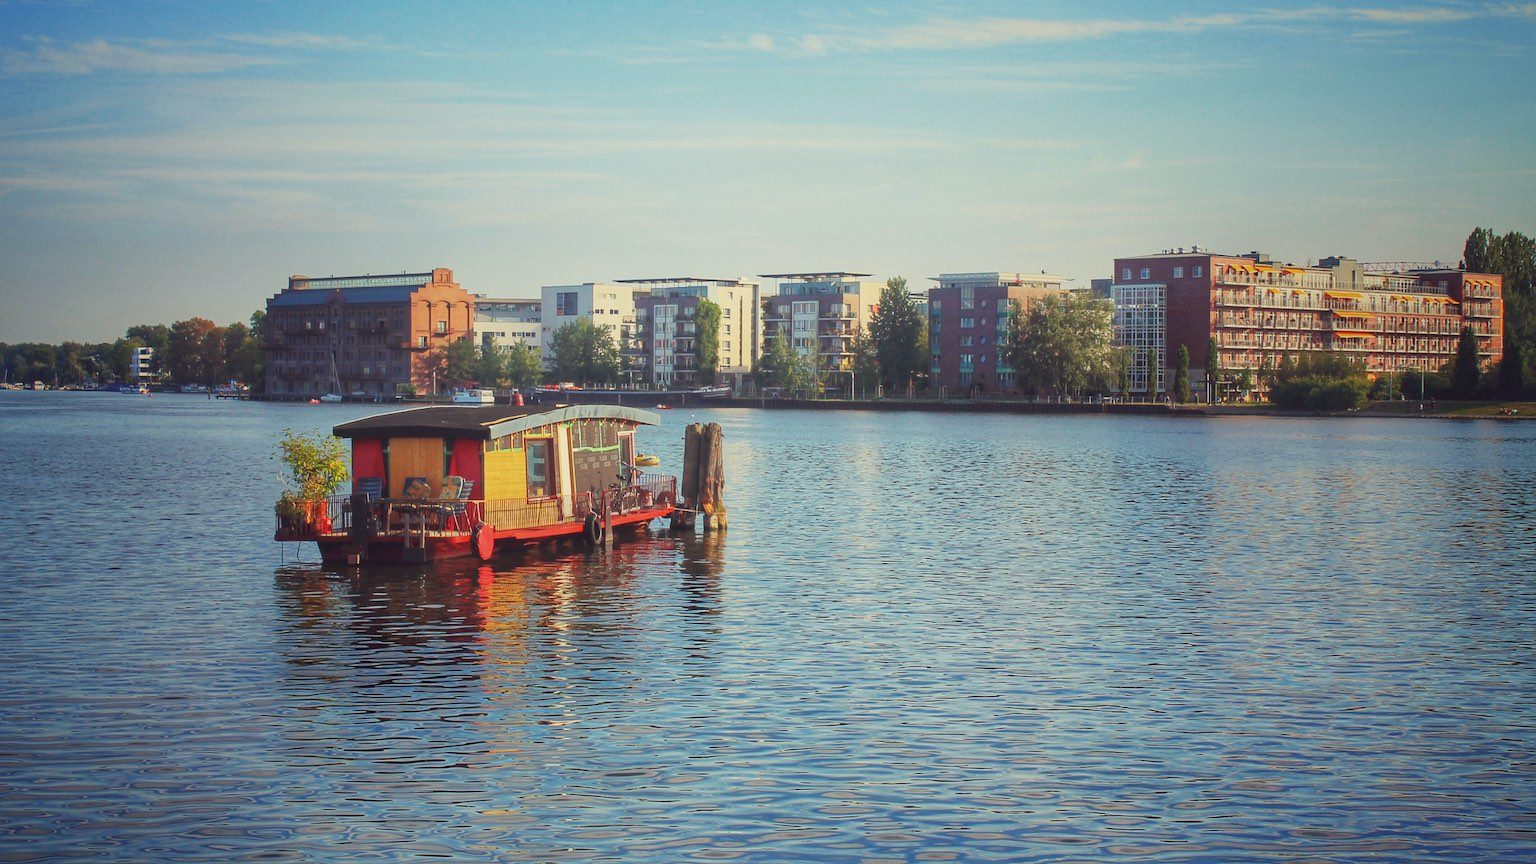 Houseboat moored in the middle of a river with view of the city on the shore.